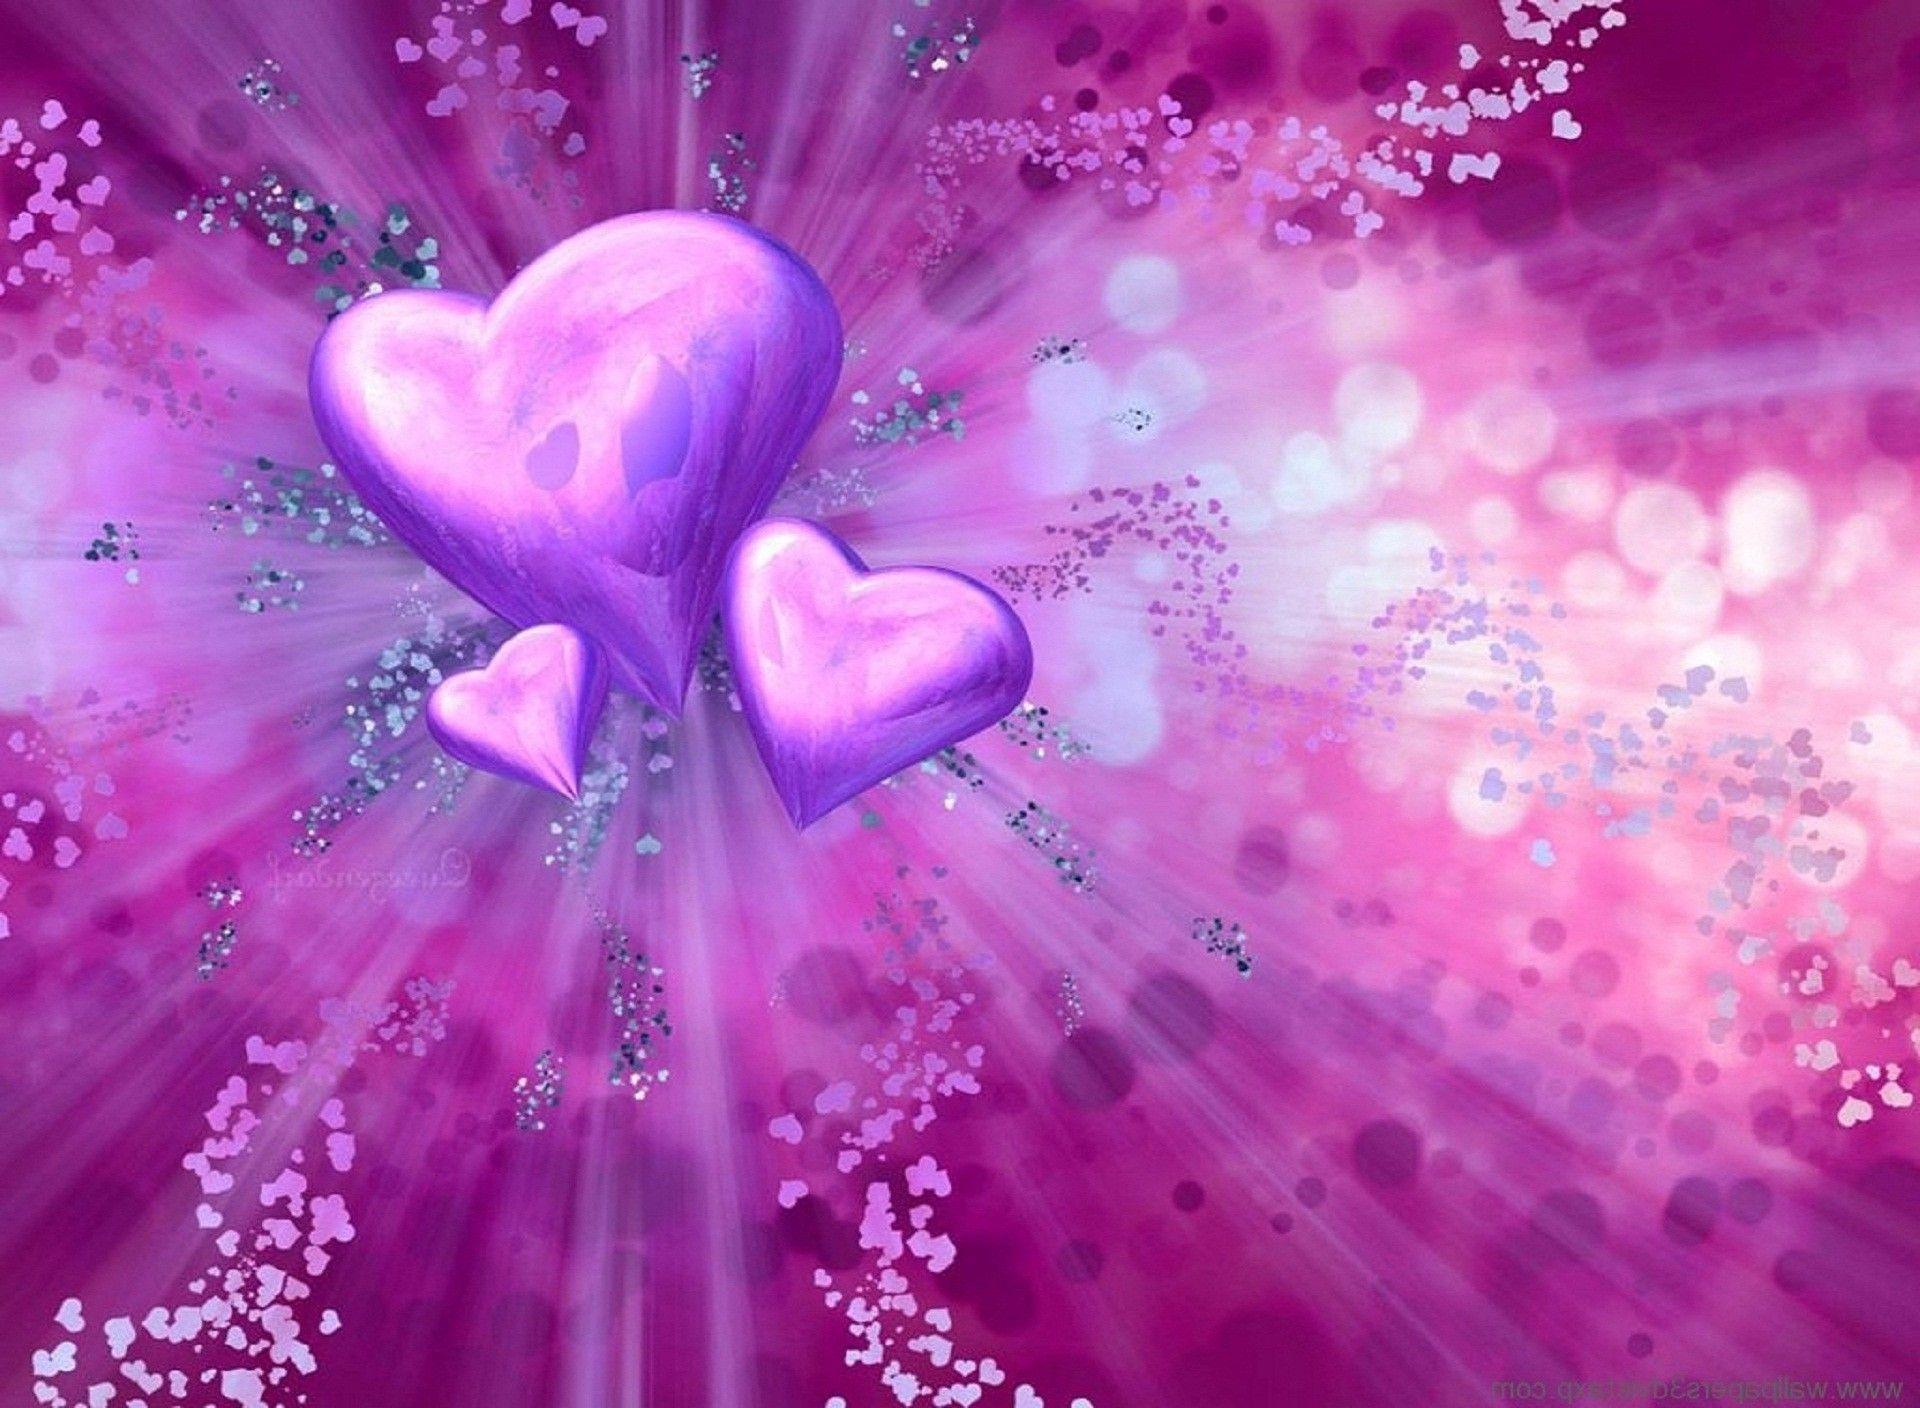 Lovely cute Love Wallpaper : Love Wallpapers 3D - Wallpaper cave